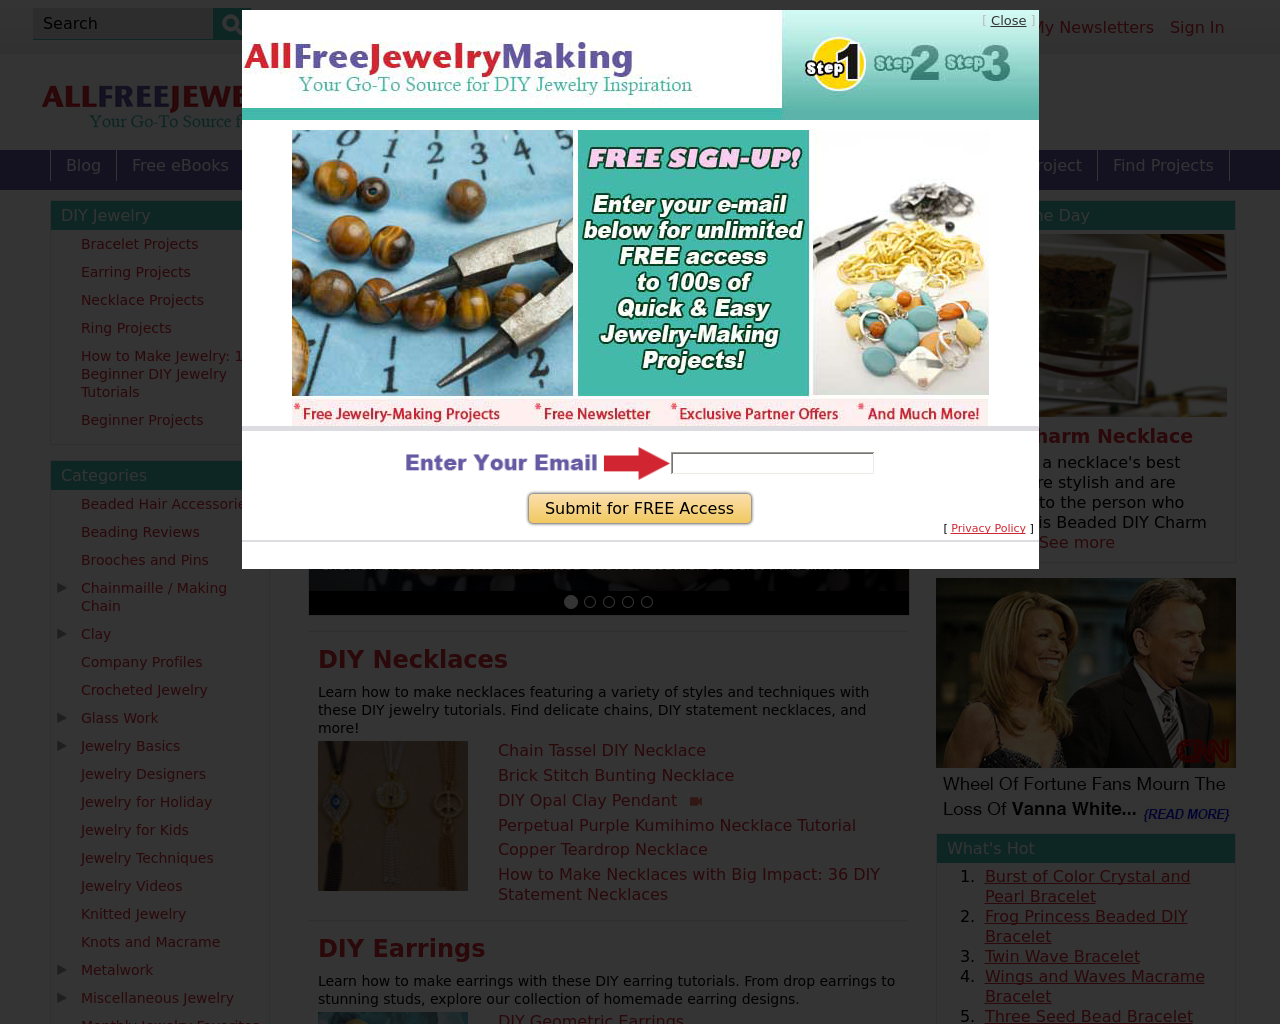 All-Free-Jewelry-Making-Advertising-Reviews-Pricing